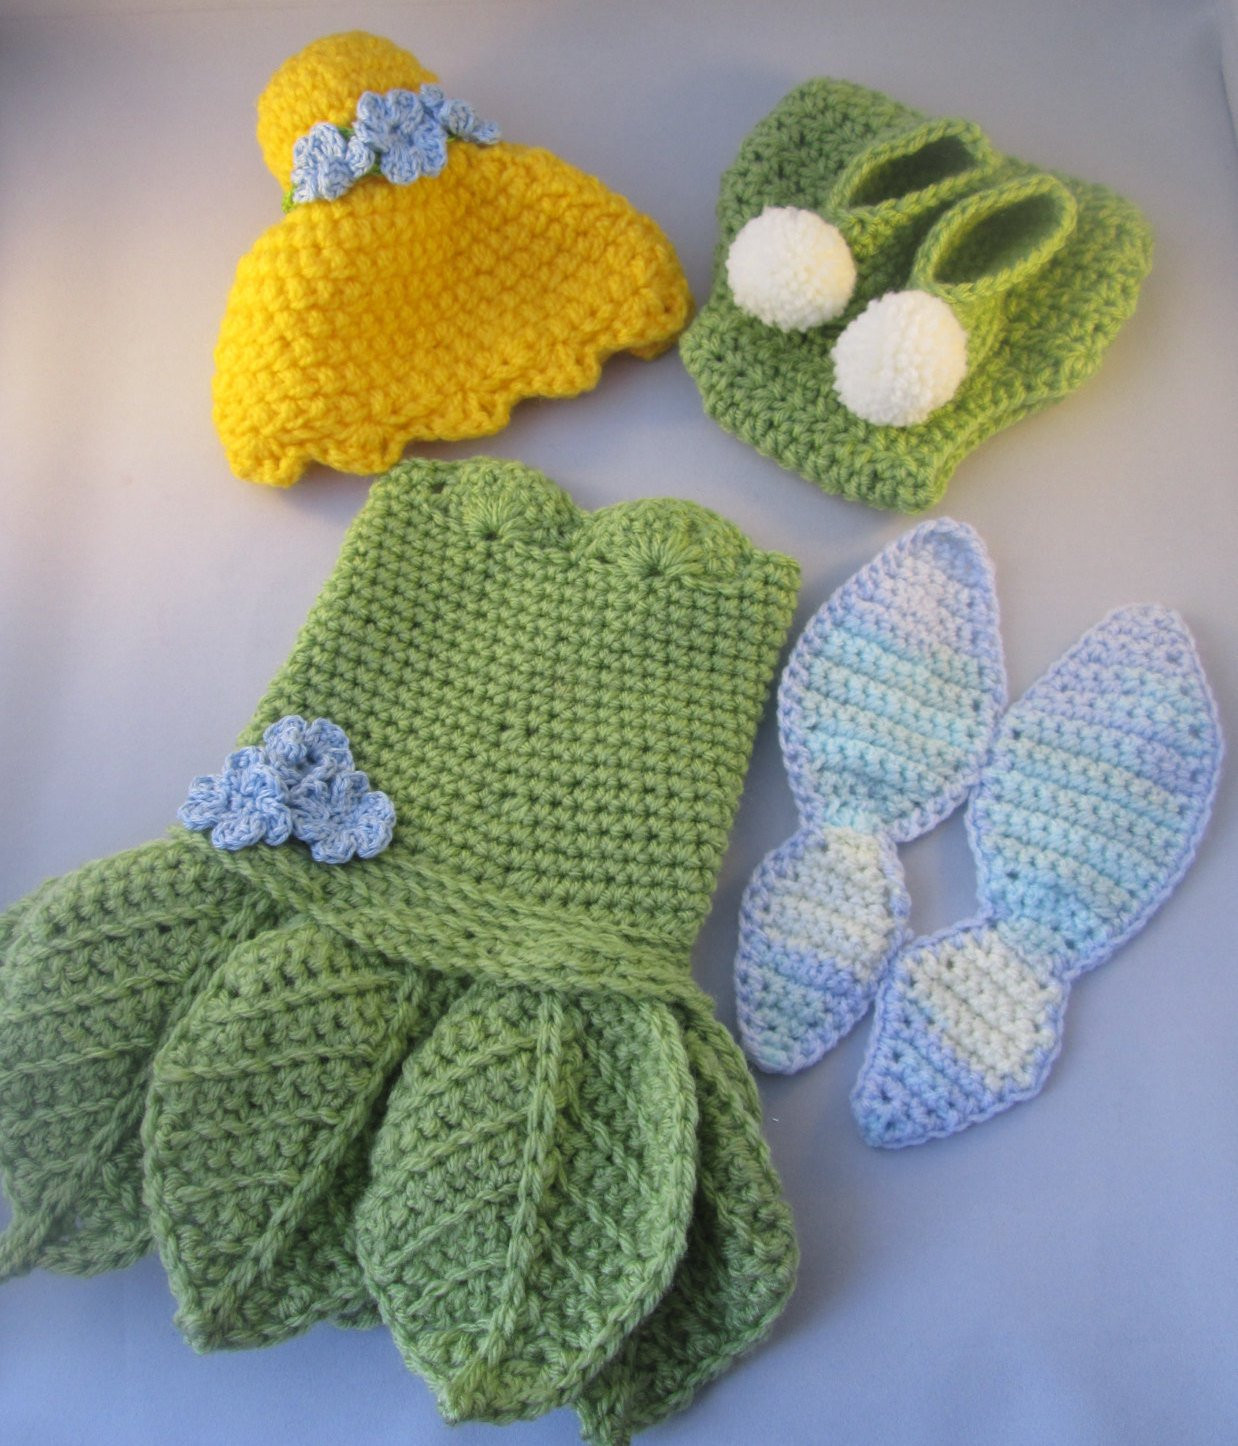 Fresh Baby Fairy Handmade Crocheted Outfit Halloween Set Handmade Crochet Of Delightful 40 Pics Handmade Crochet